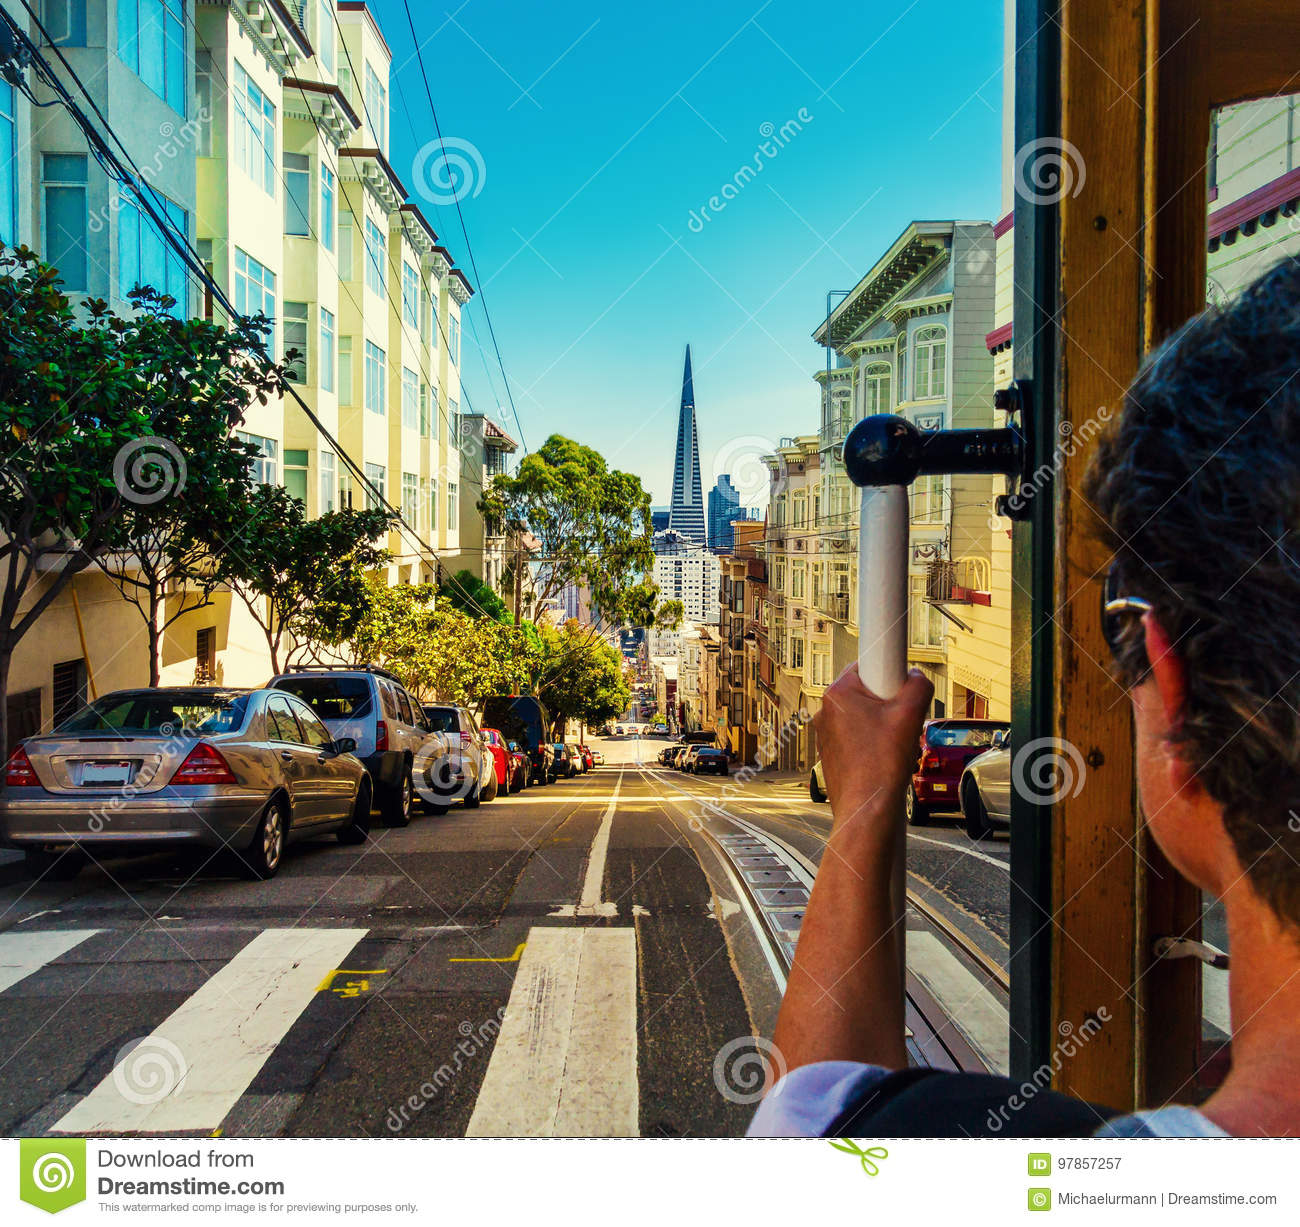 Ride with the cable car in San Francisco. Picture shows a person riding the famous MUNI train on Powell-Mason line.